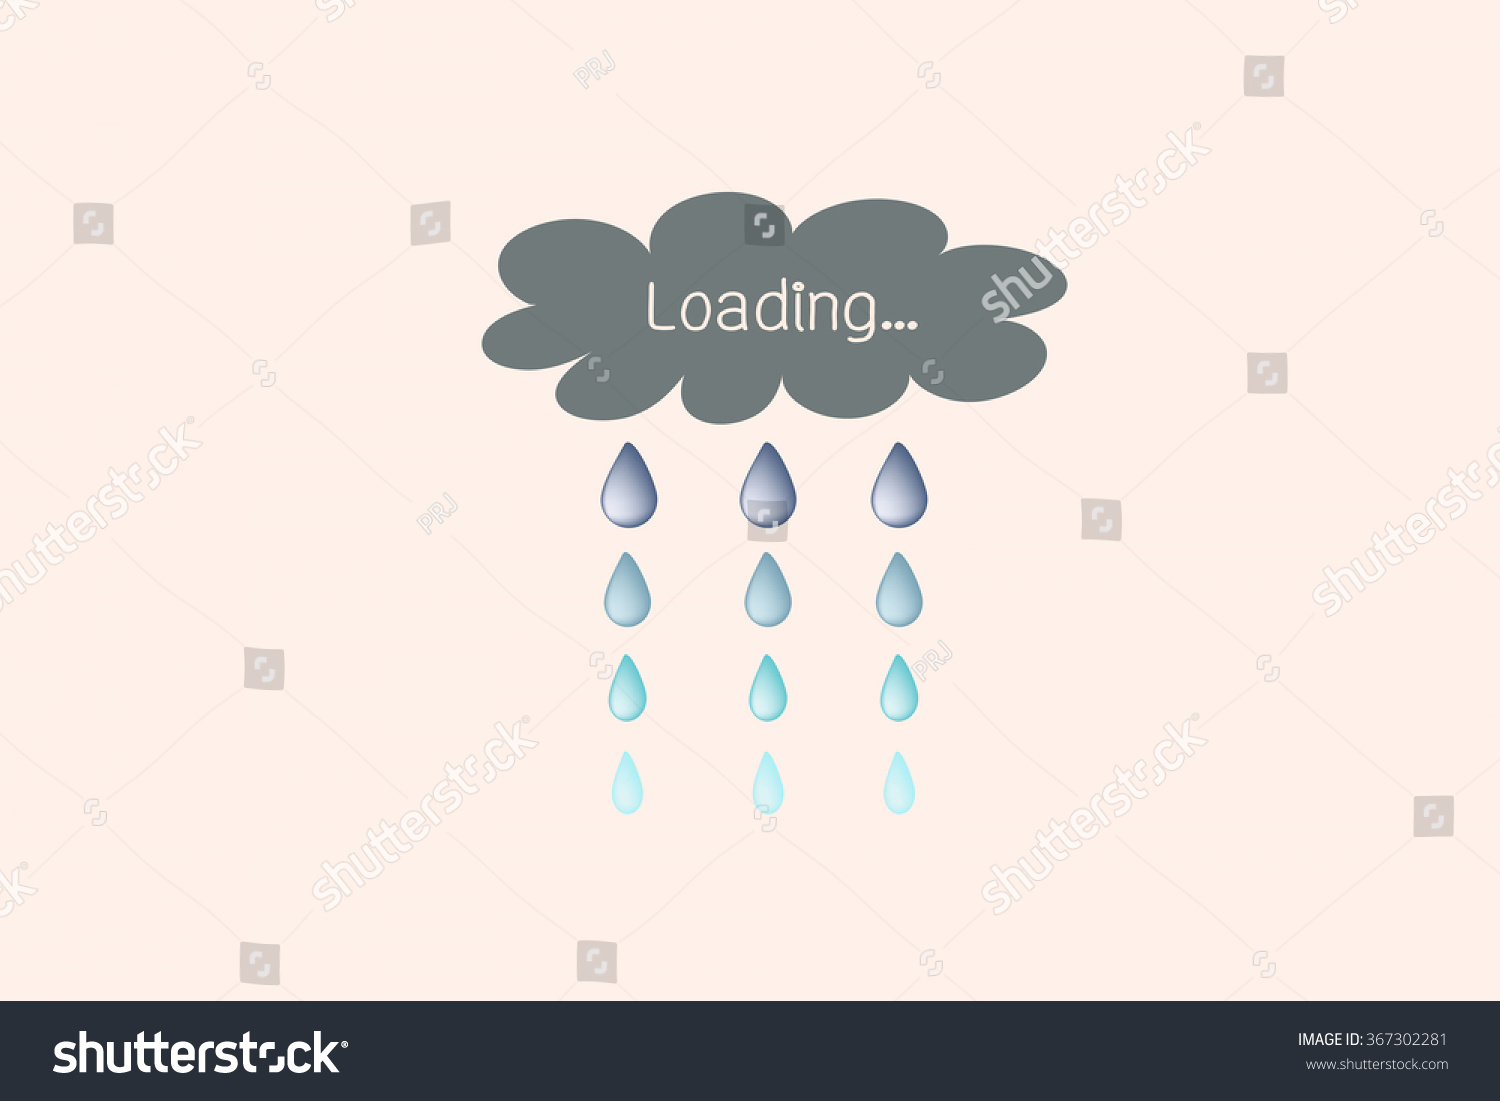 Loading symbol cloud rainfall style stock vector 367302281 loading symbol in cloud and rainfall style biocorpaavc Image collections